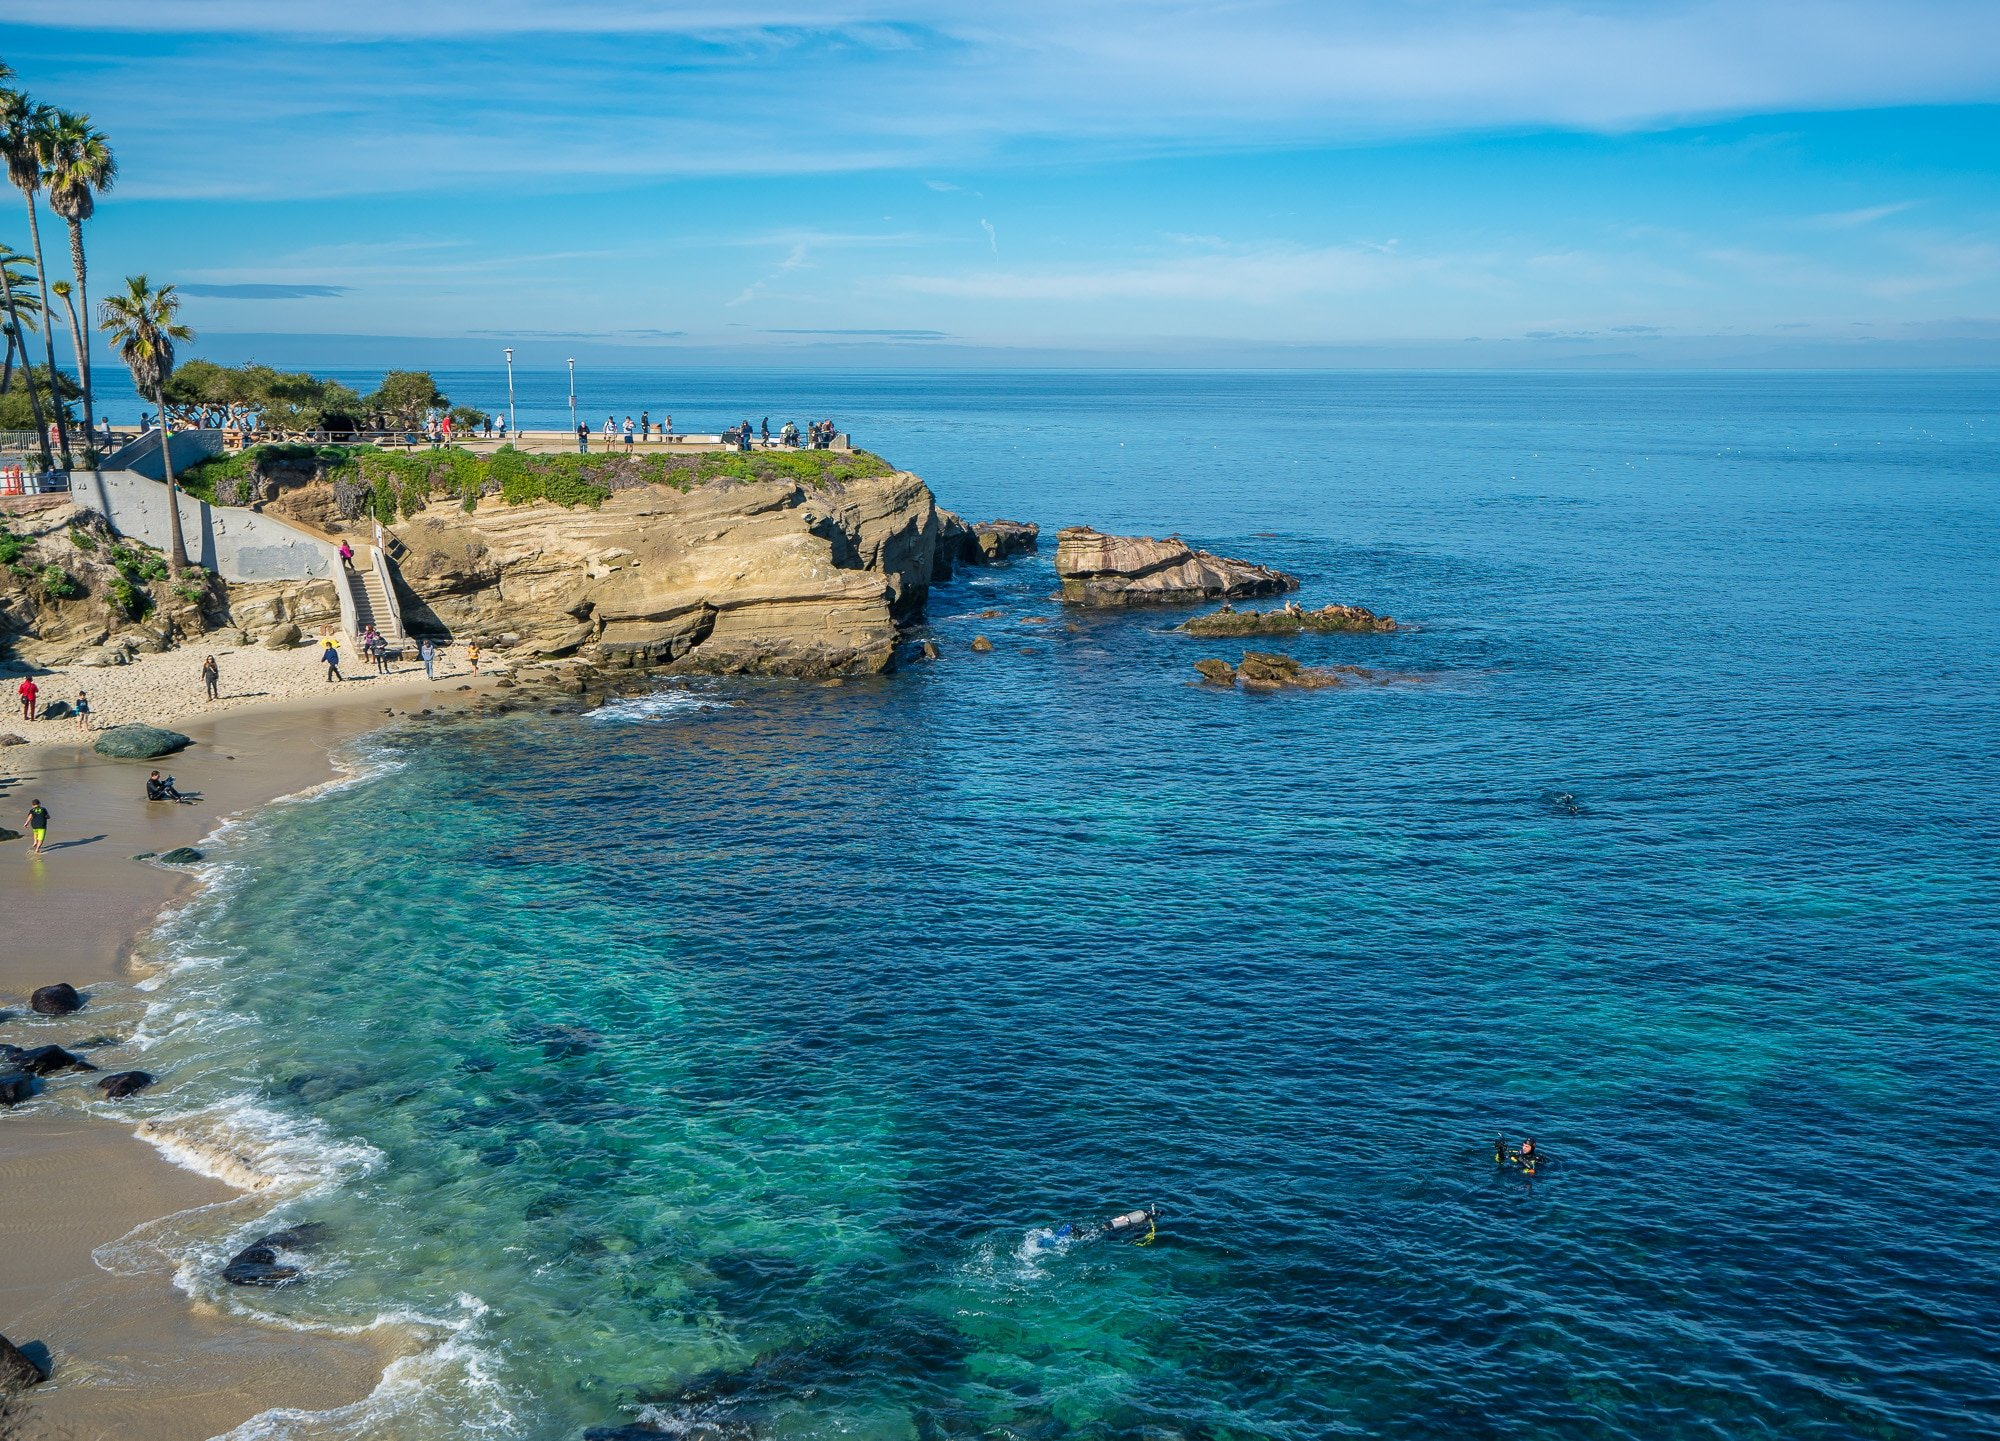 Guide to La Jolla: Things to do, restaurants, hotels